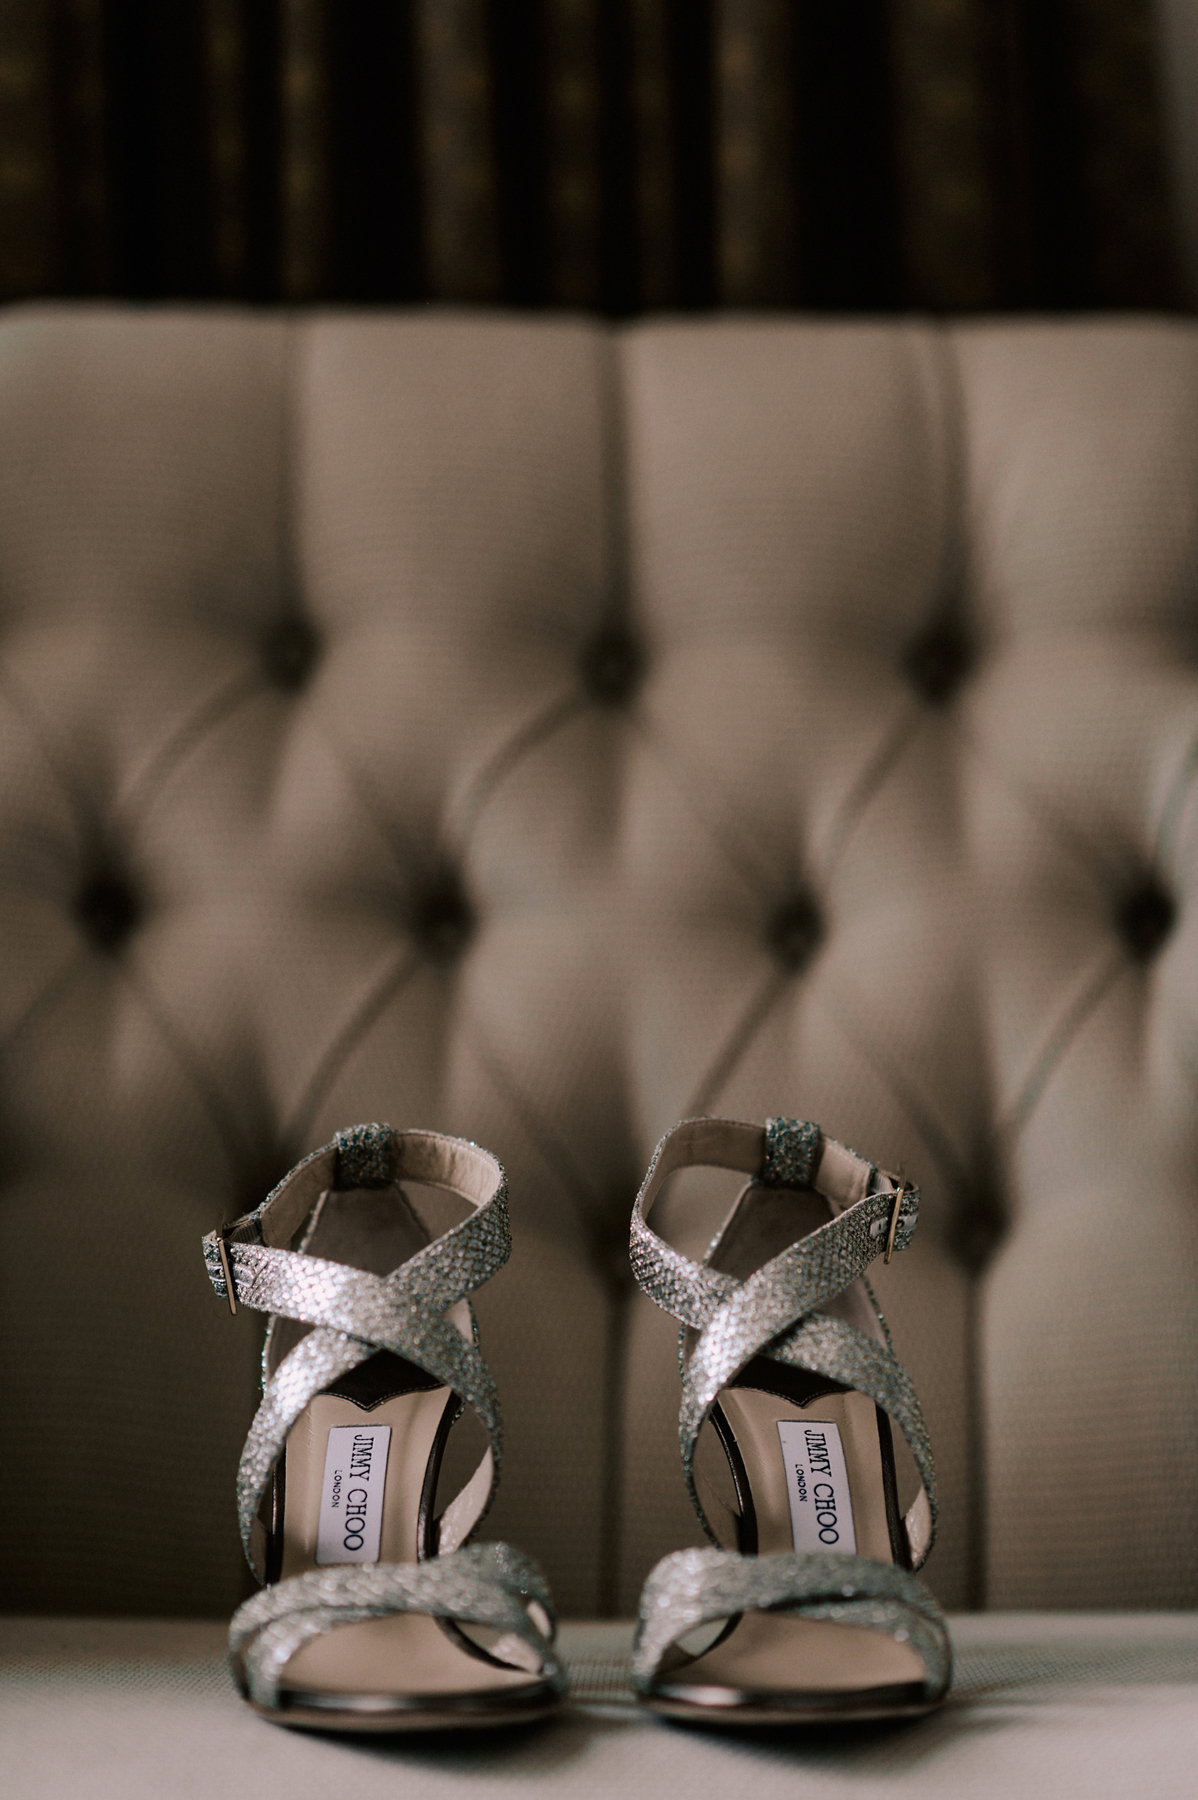 The Wedding of Stephani + Theresa | A Steamy Kind of Love - A Day To Remember